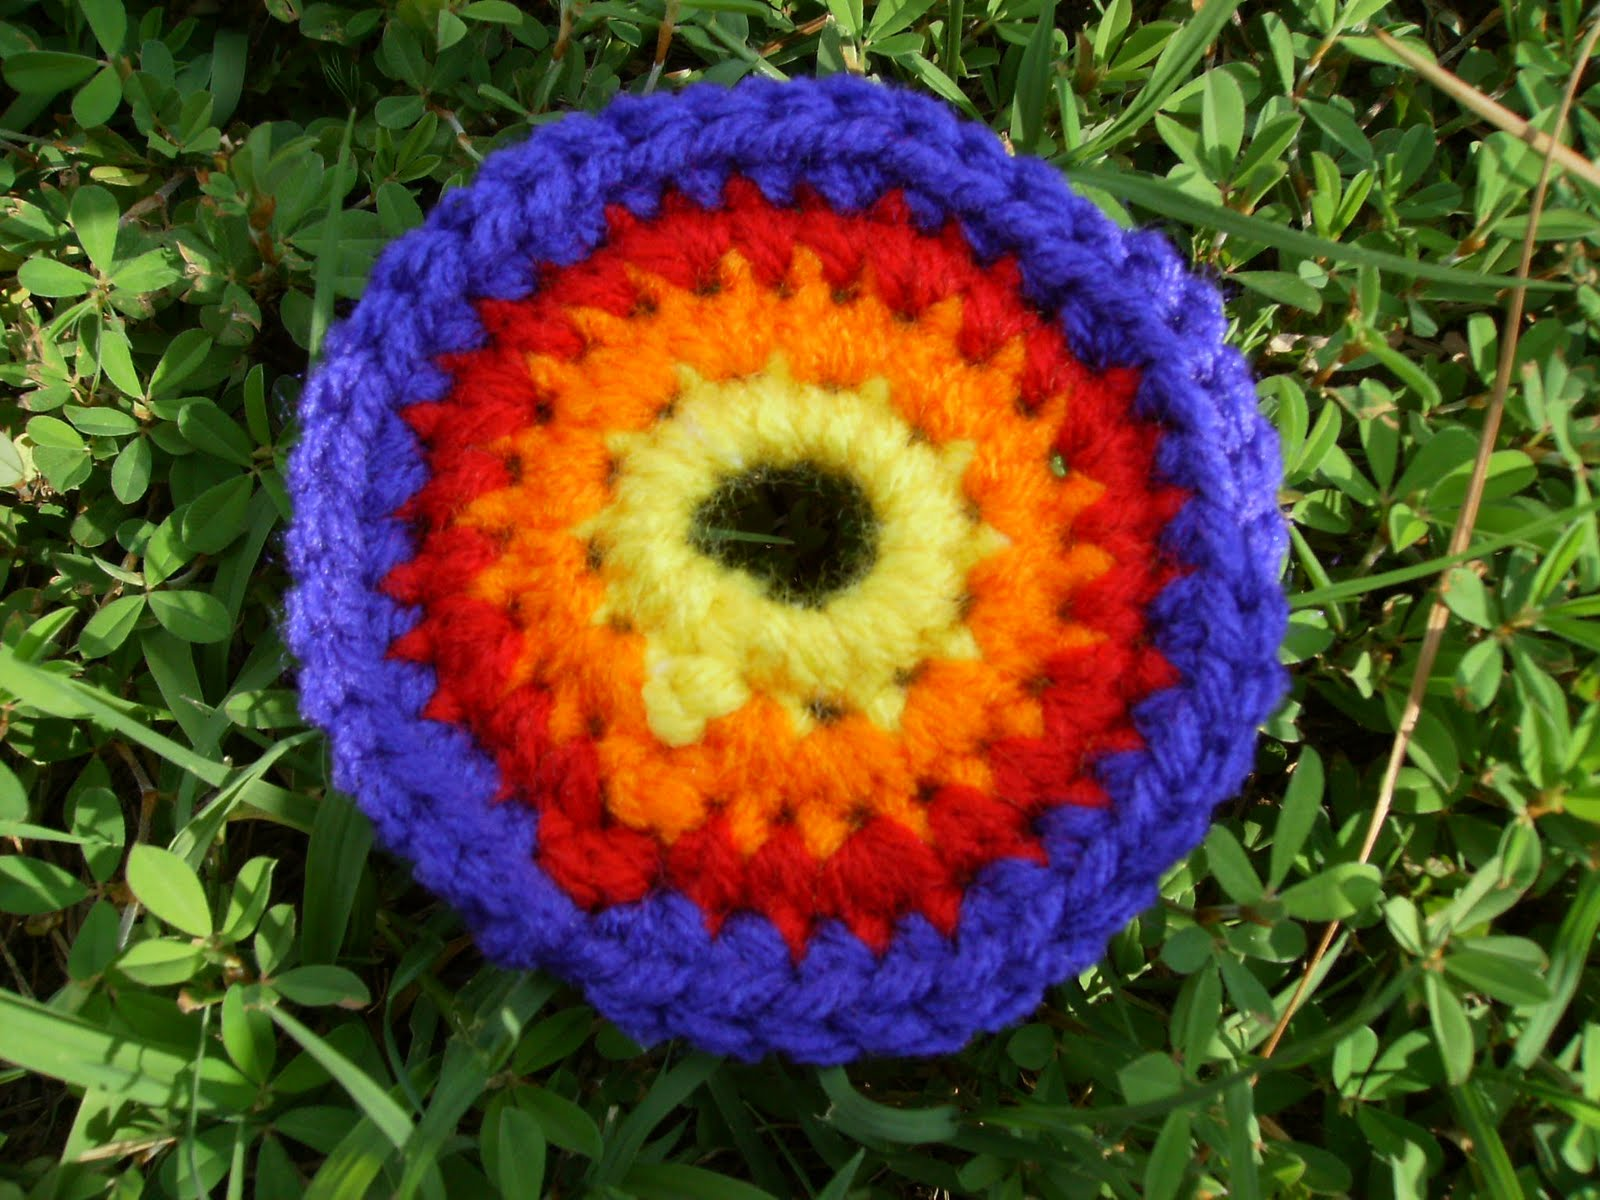 Crochet Patterns And Yarn : Scrap Yarn Crochet: Free Crazy Circle Crochet Pattern